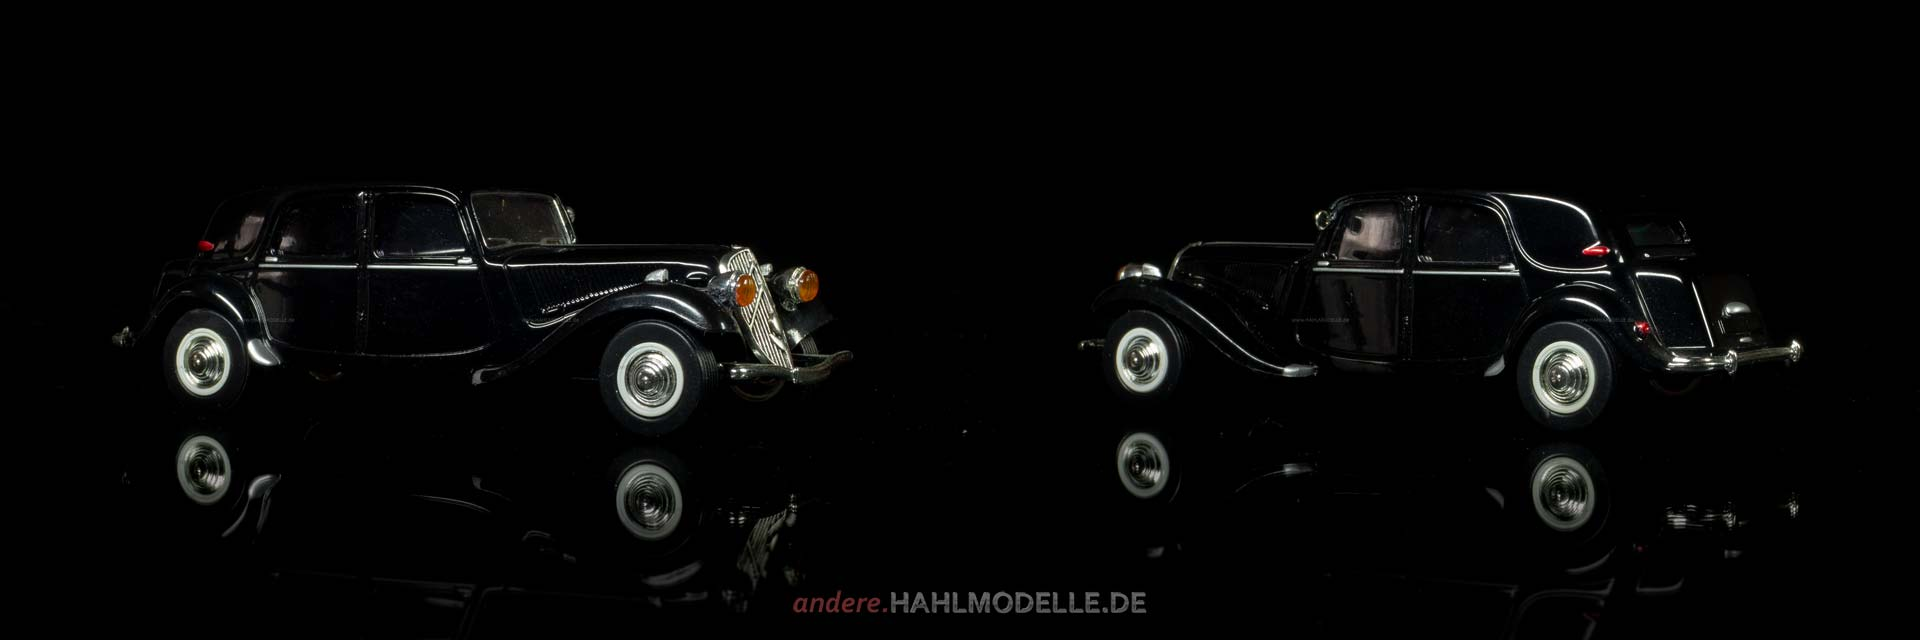 Citroën Traction Avant (11 CV) | Limousine | Ixo (Del Prado Car Collection) | 1:43 | www.andere.hahlmodelle.de